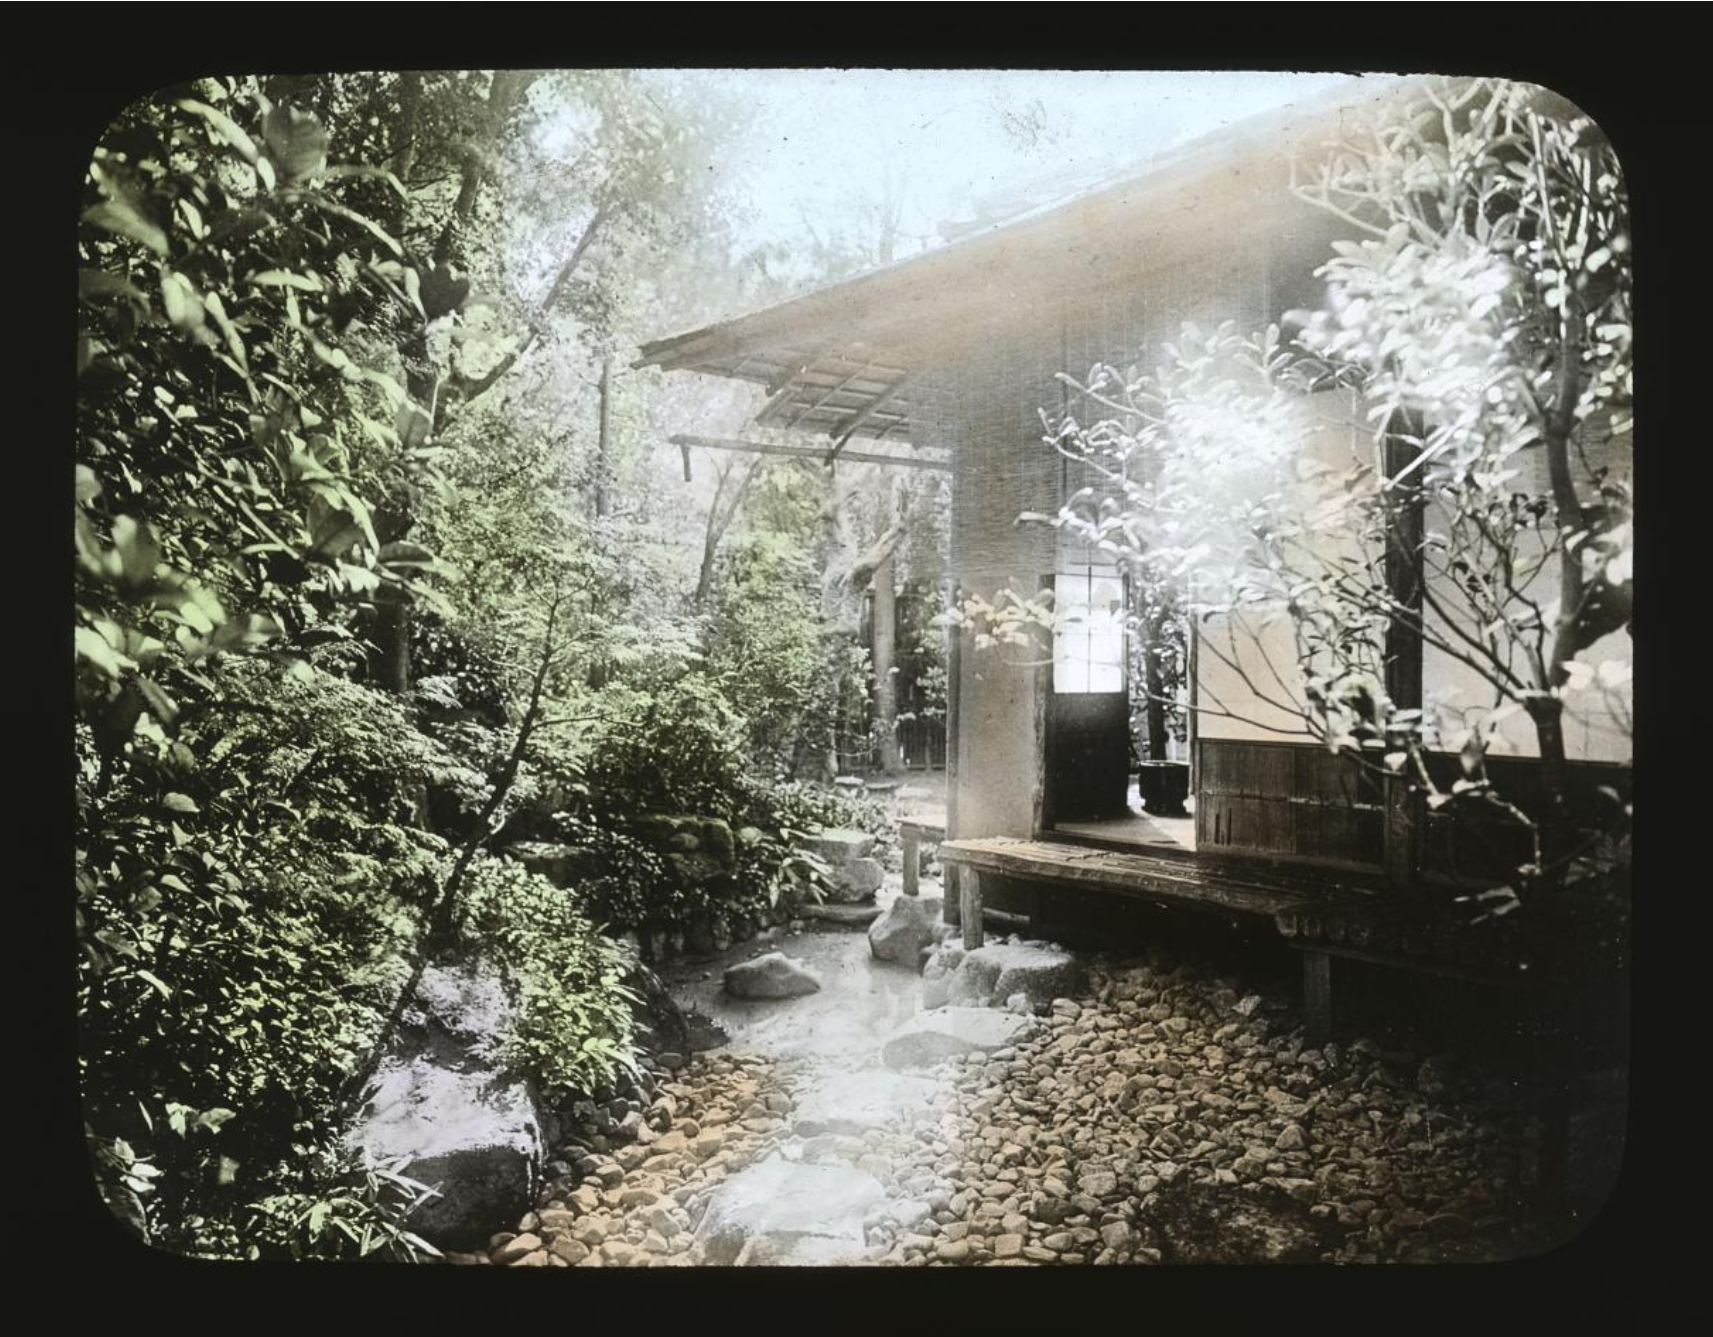 View of an outdoor garden with sunlight manipulating the camera. There is also a view of a building